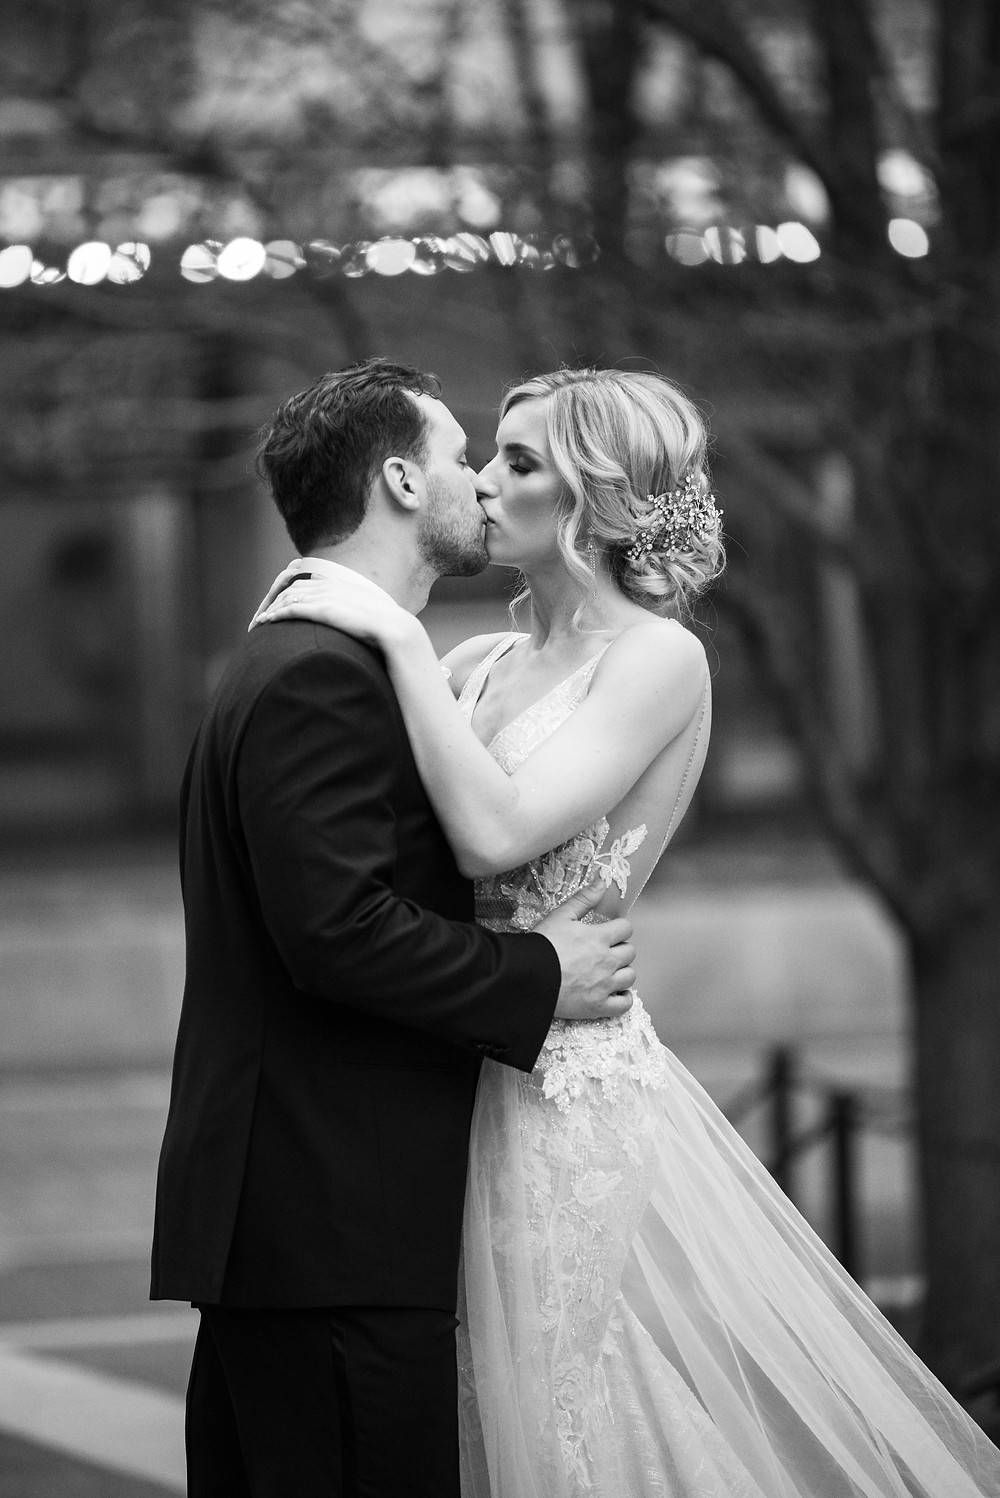 Bride and groom kissing in Mellon Square in Pittsburgh, PA